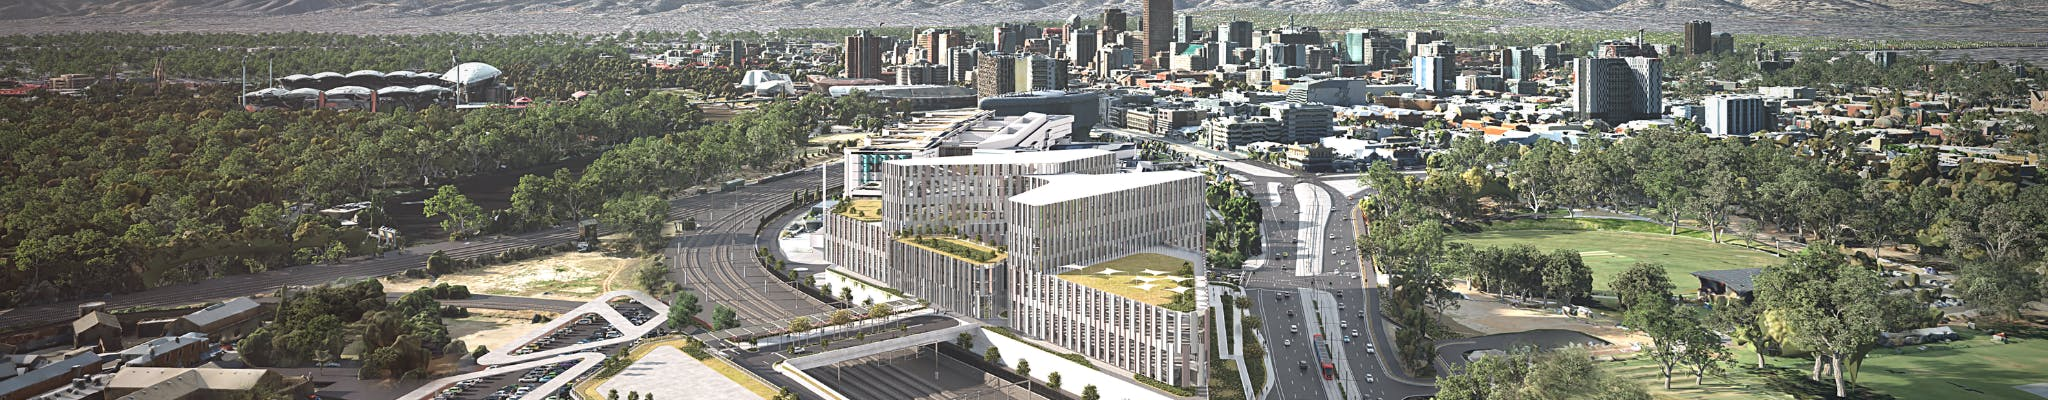 Artist's impression of the New Women's and Children's Hospital facing east